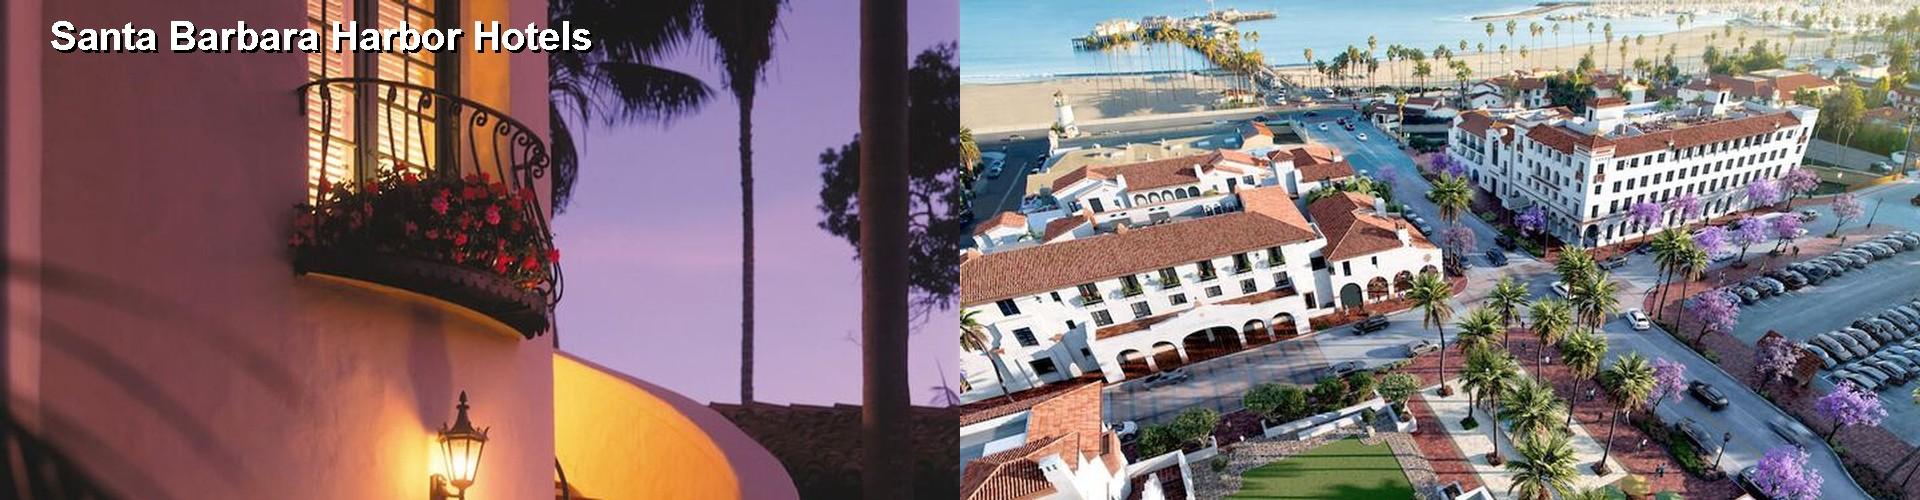 5 Best Hotels near Santa Barbara Harbor